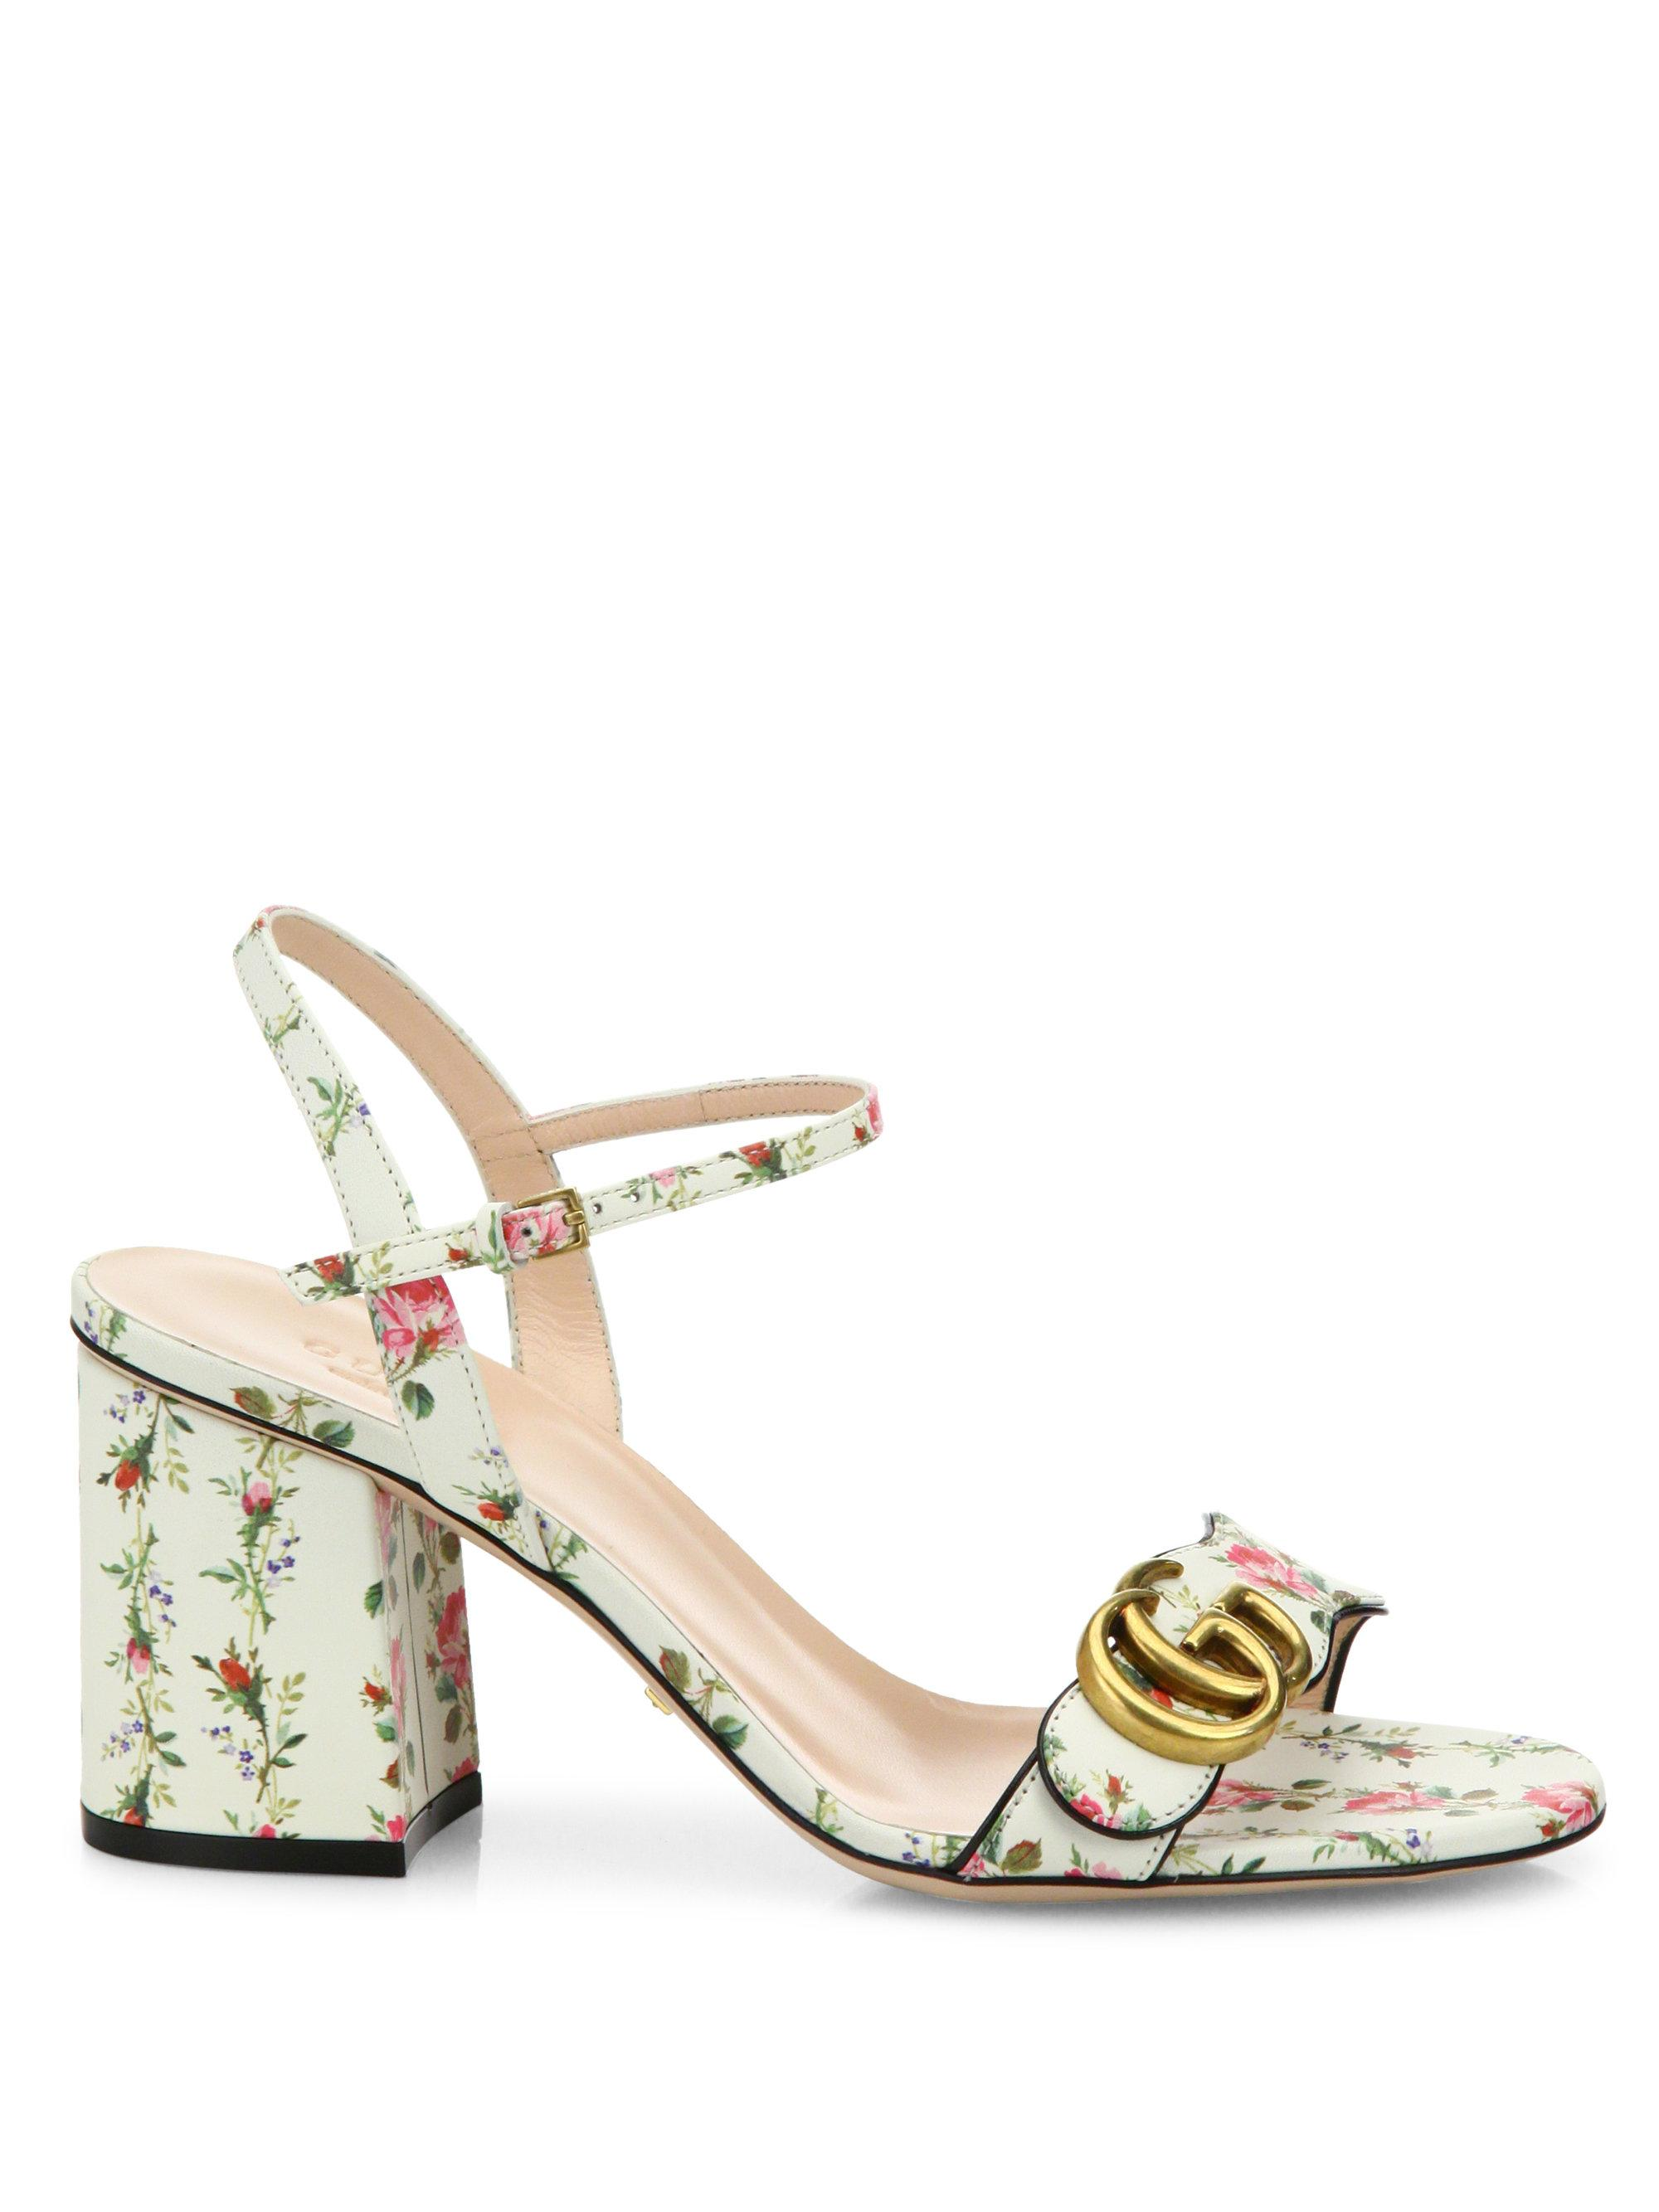 0ad17135d Gucci Floral-print Leather Sandals in White - Lyst